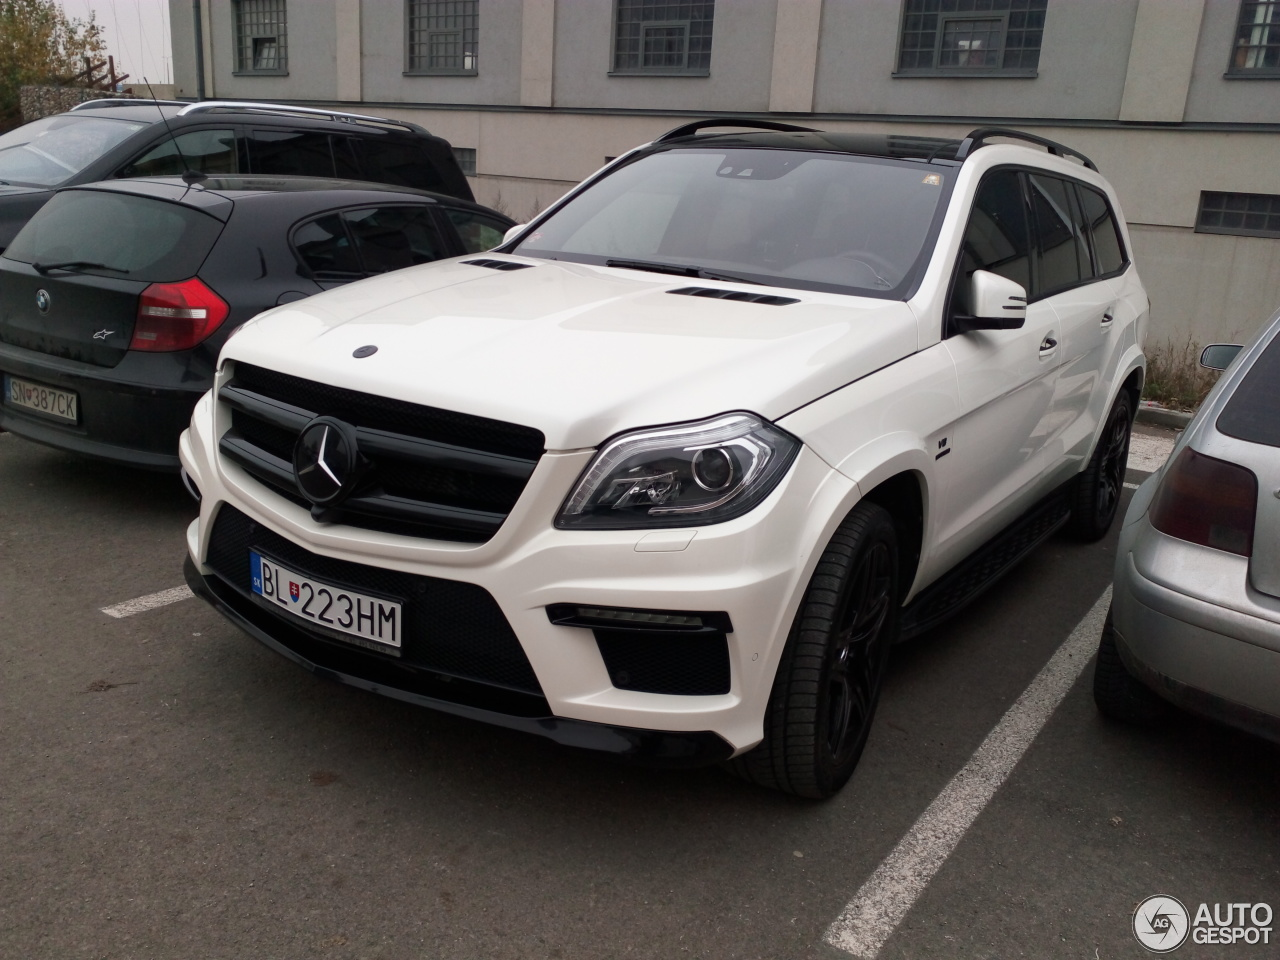 Mercedes benz gl 63 amg x166 24 november 2016 autogespot for Mercedes benz gl amg for sale